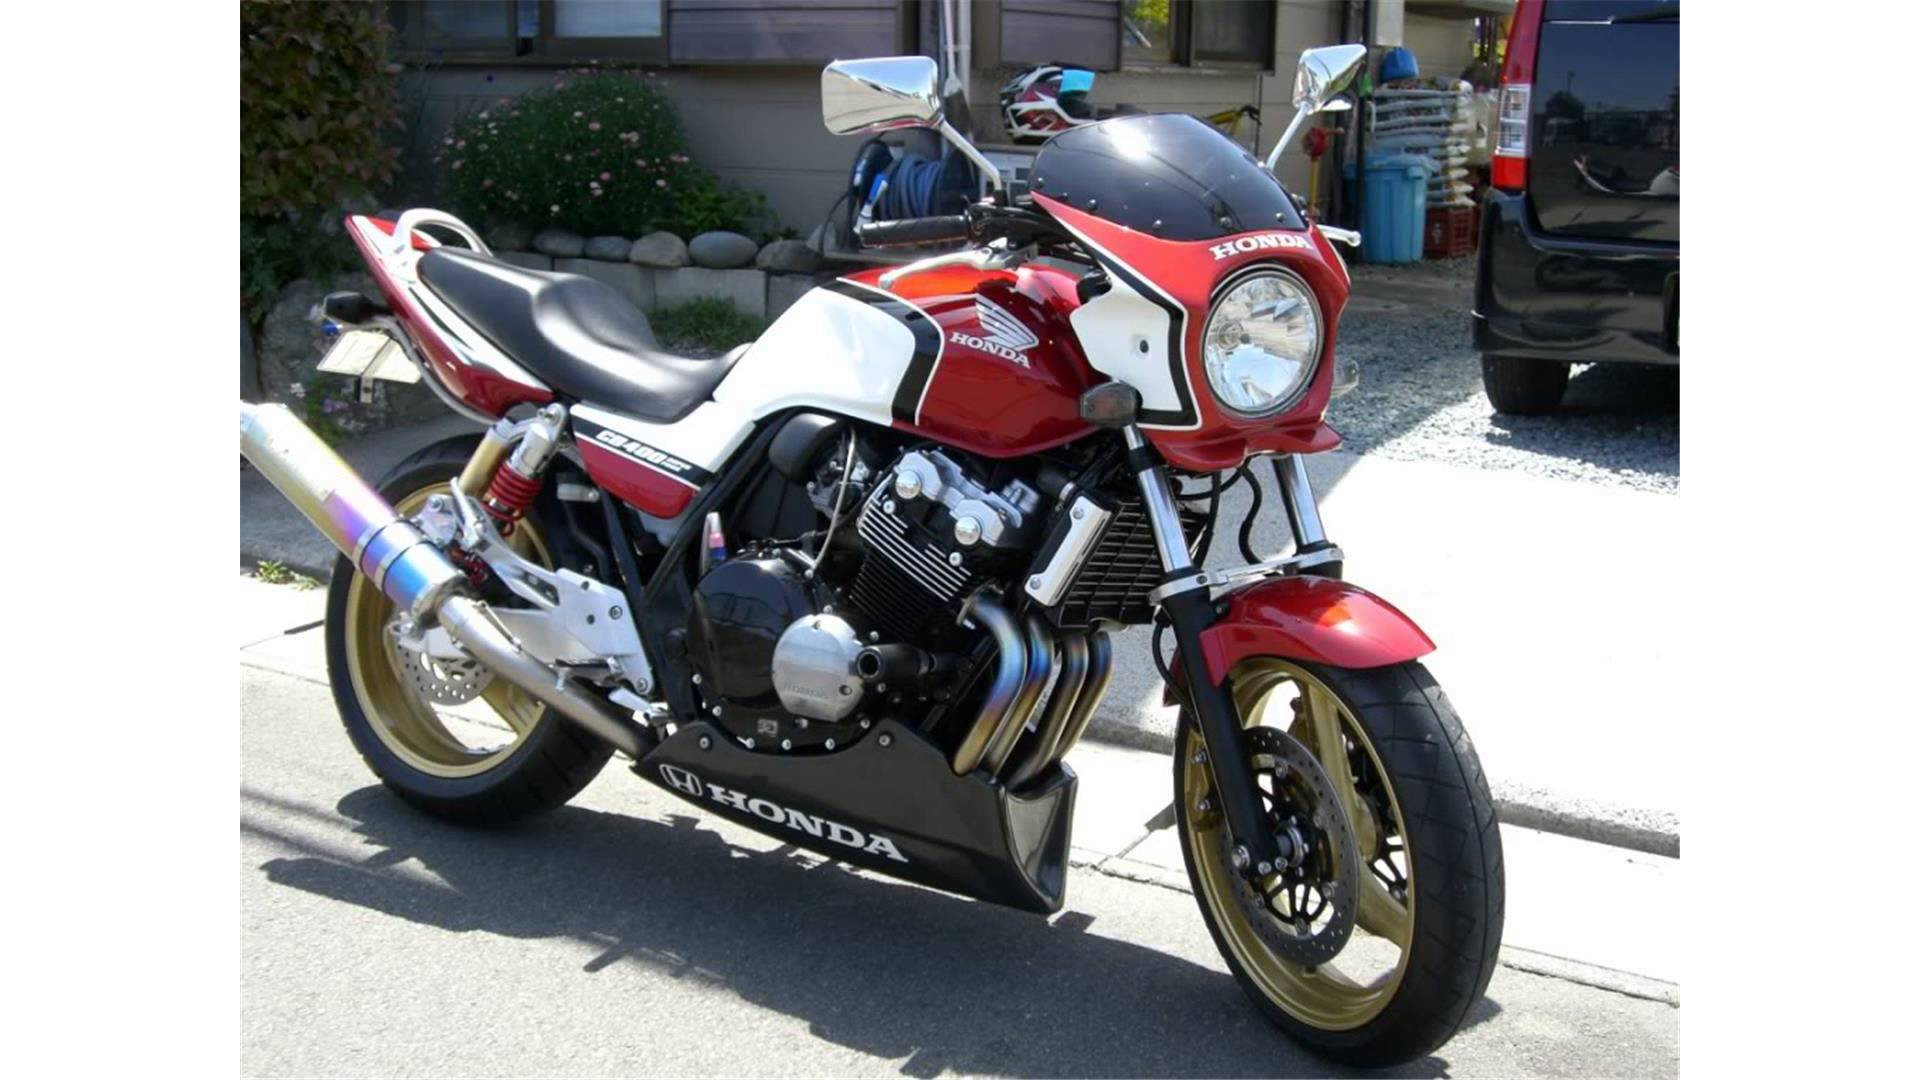 2011 Honda CB400 Super Four ABS #2